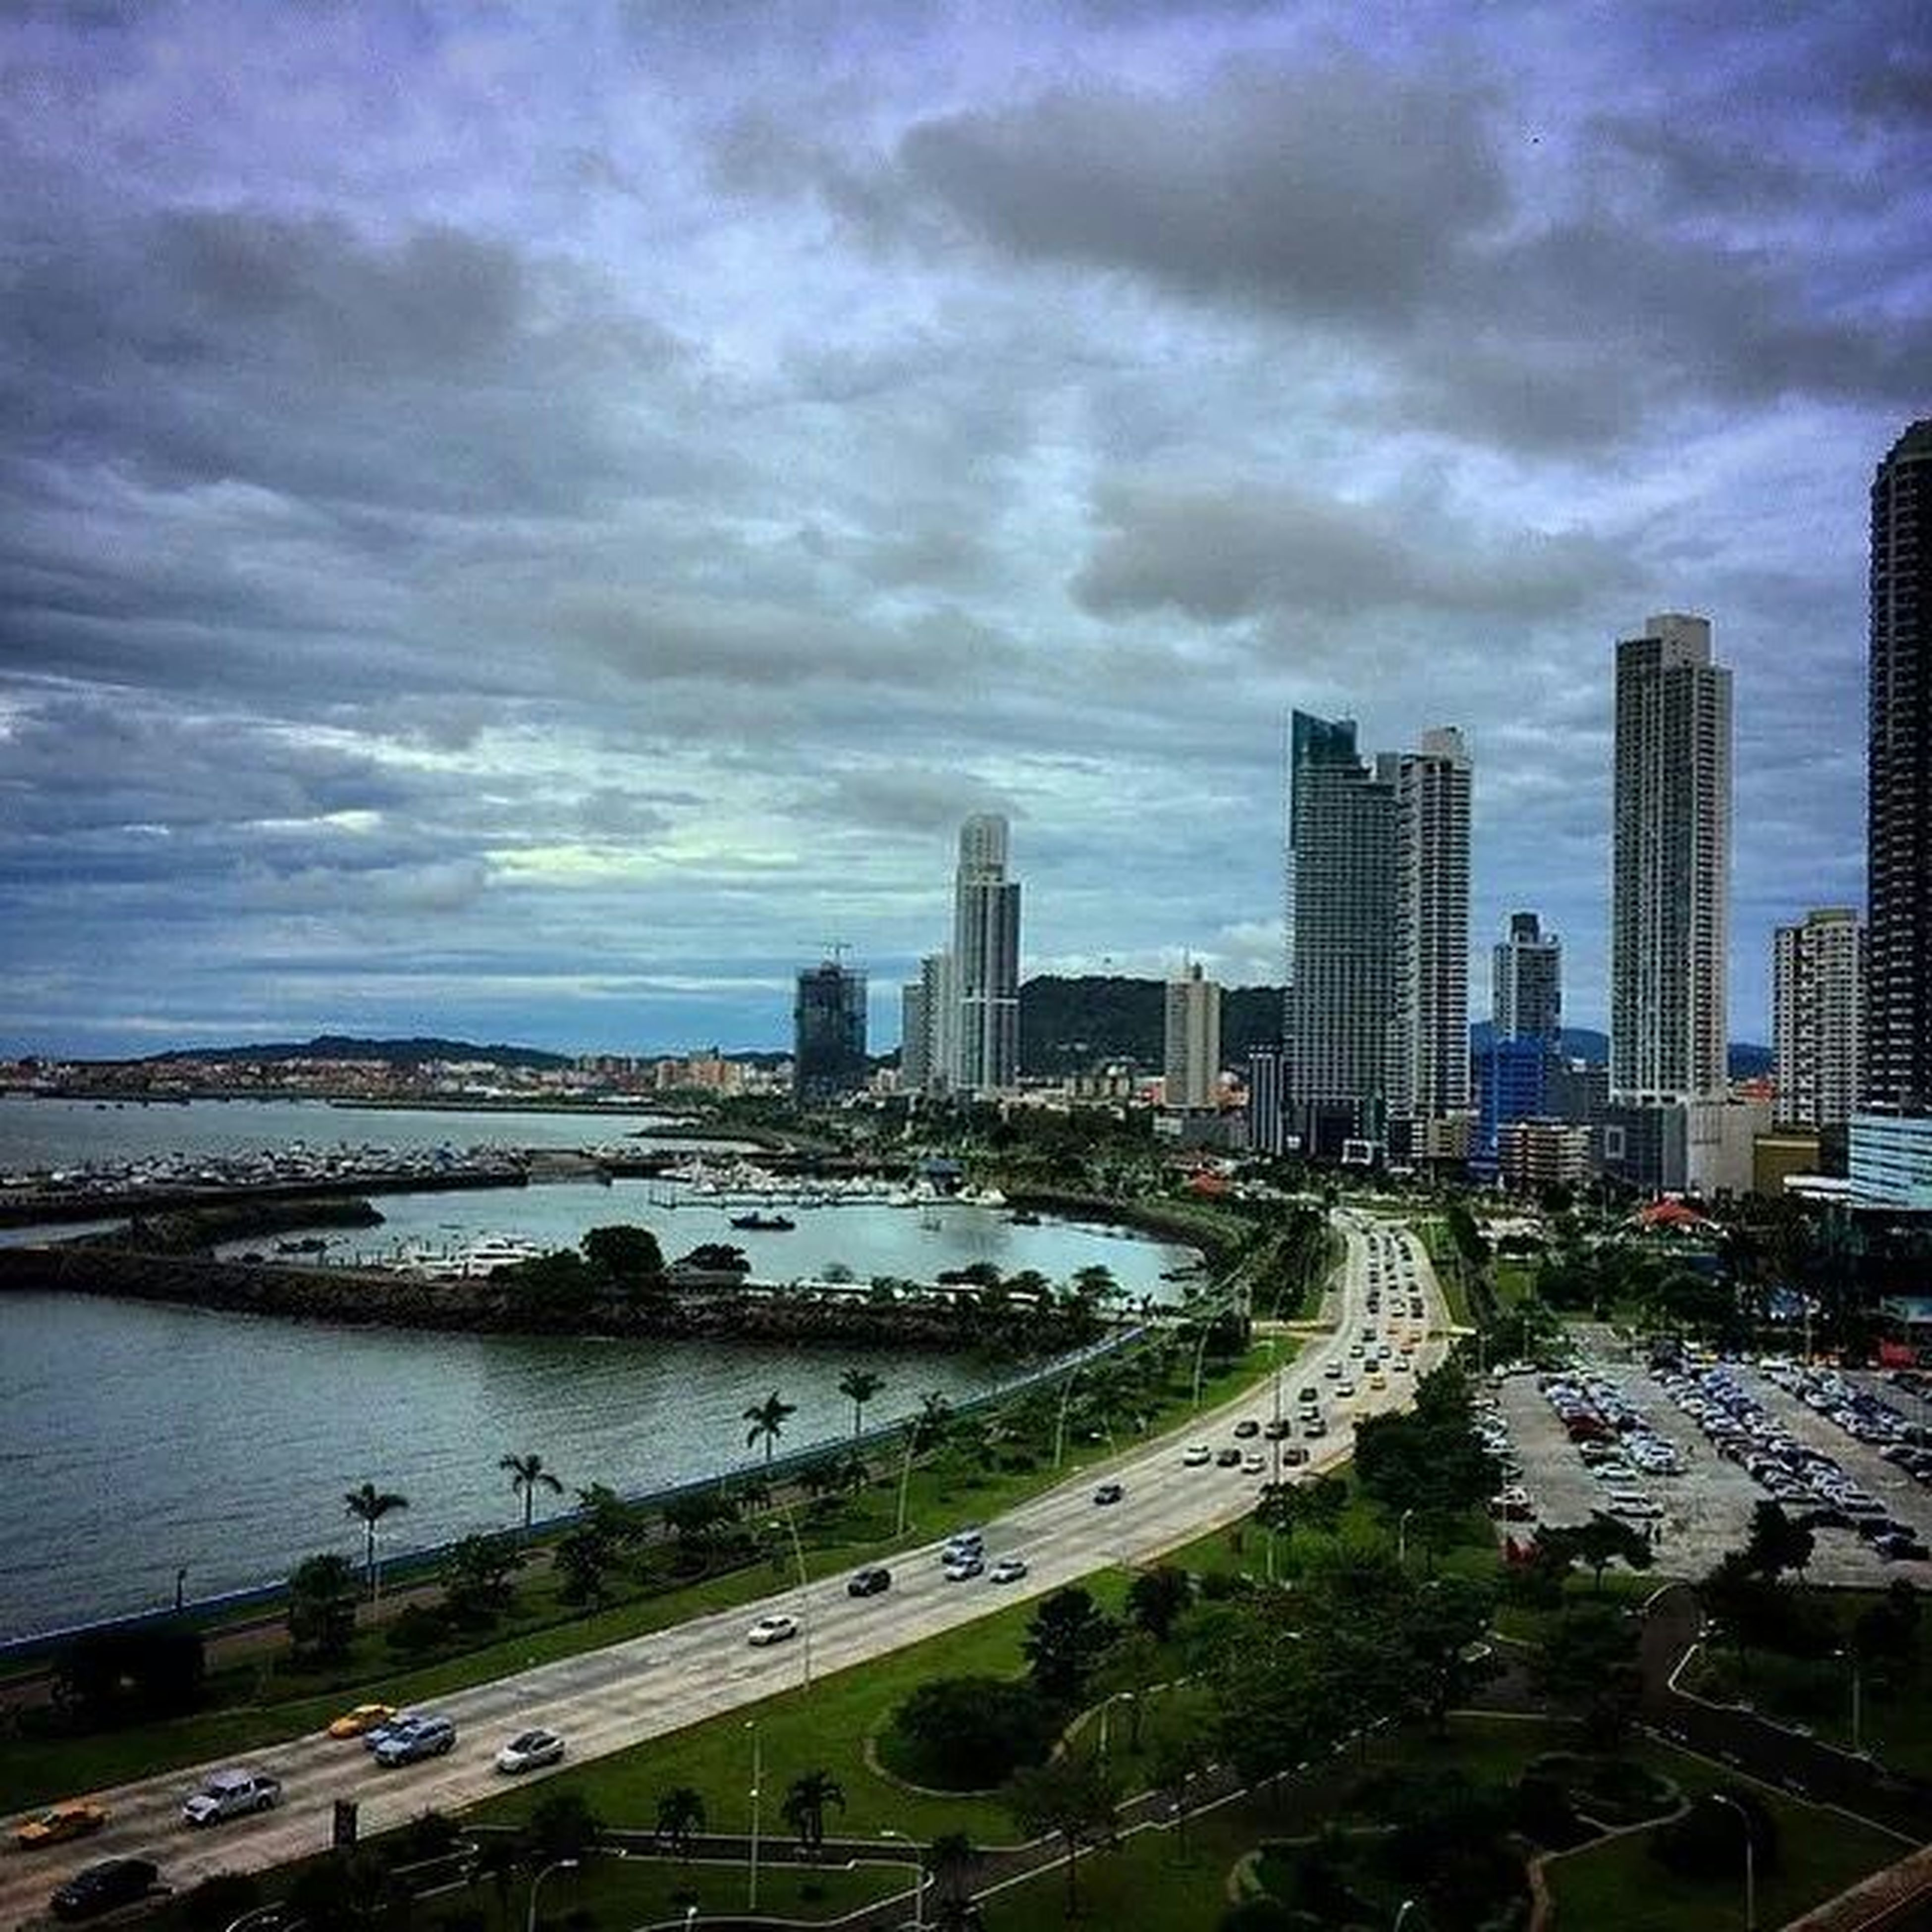 city, architecture, building exterior, cityscape, built structure, skyscraper, sky, water, river, cloud - sky, urban skyline, tower, modern, tall - high, skyline, capital cities, city life, cloudy, office building, bridge - man made structure